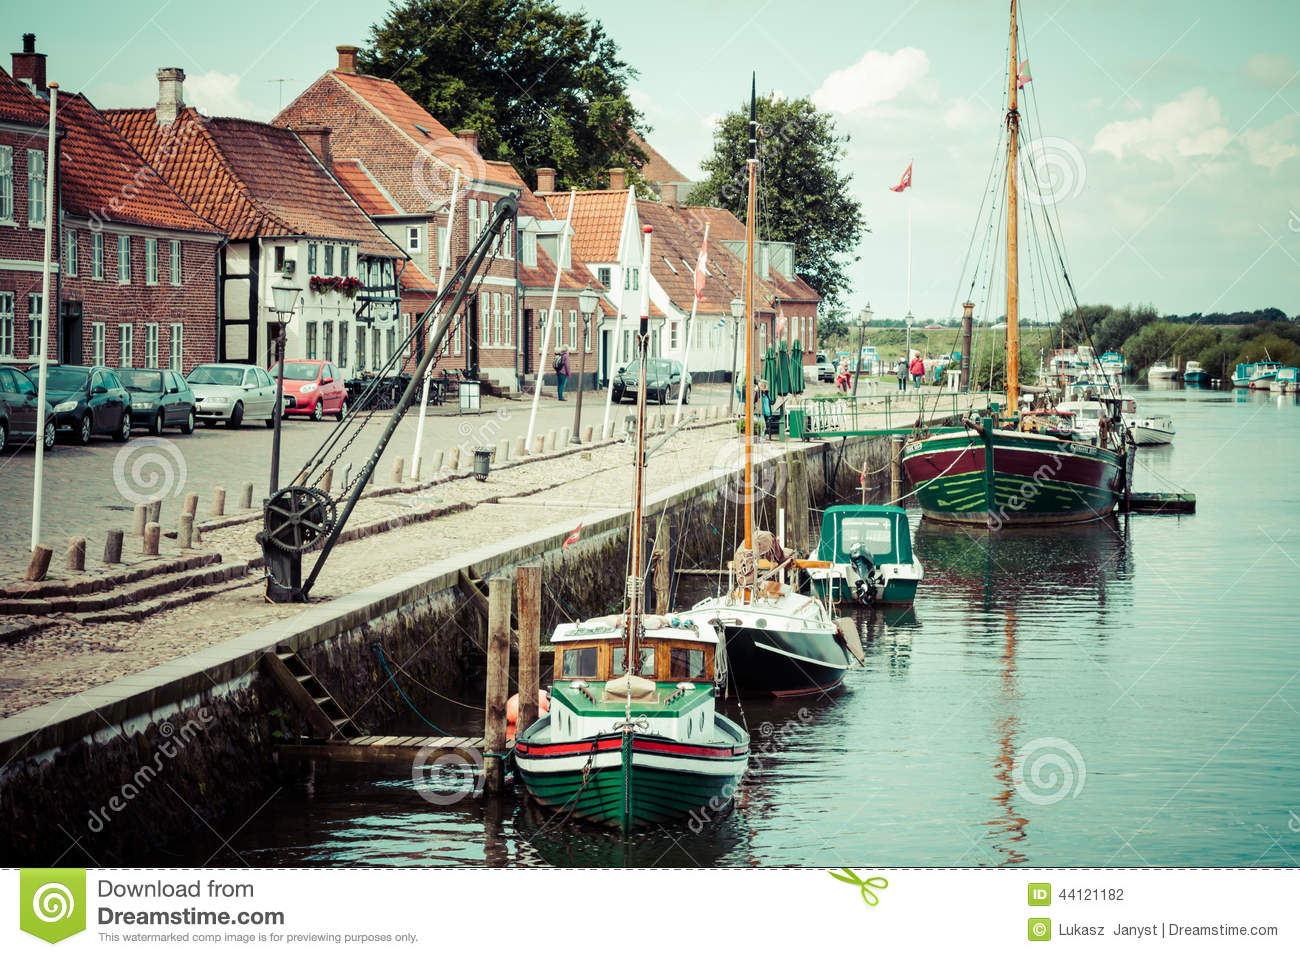 Ribe harbour Skibbroen. Old town and Ribe river,May 3, 2013